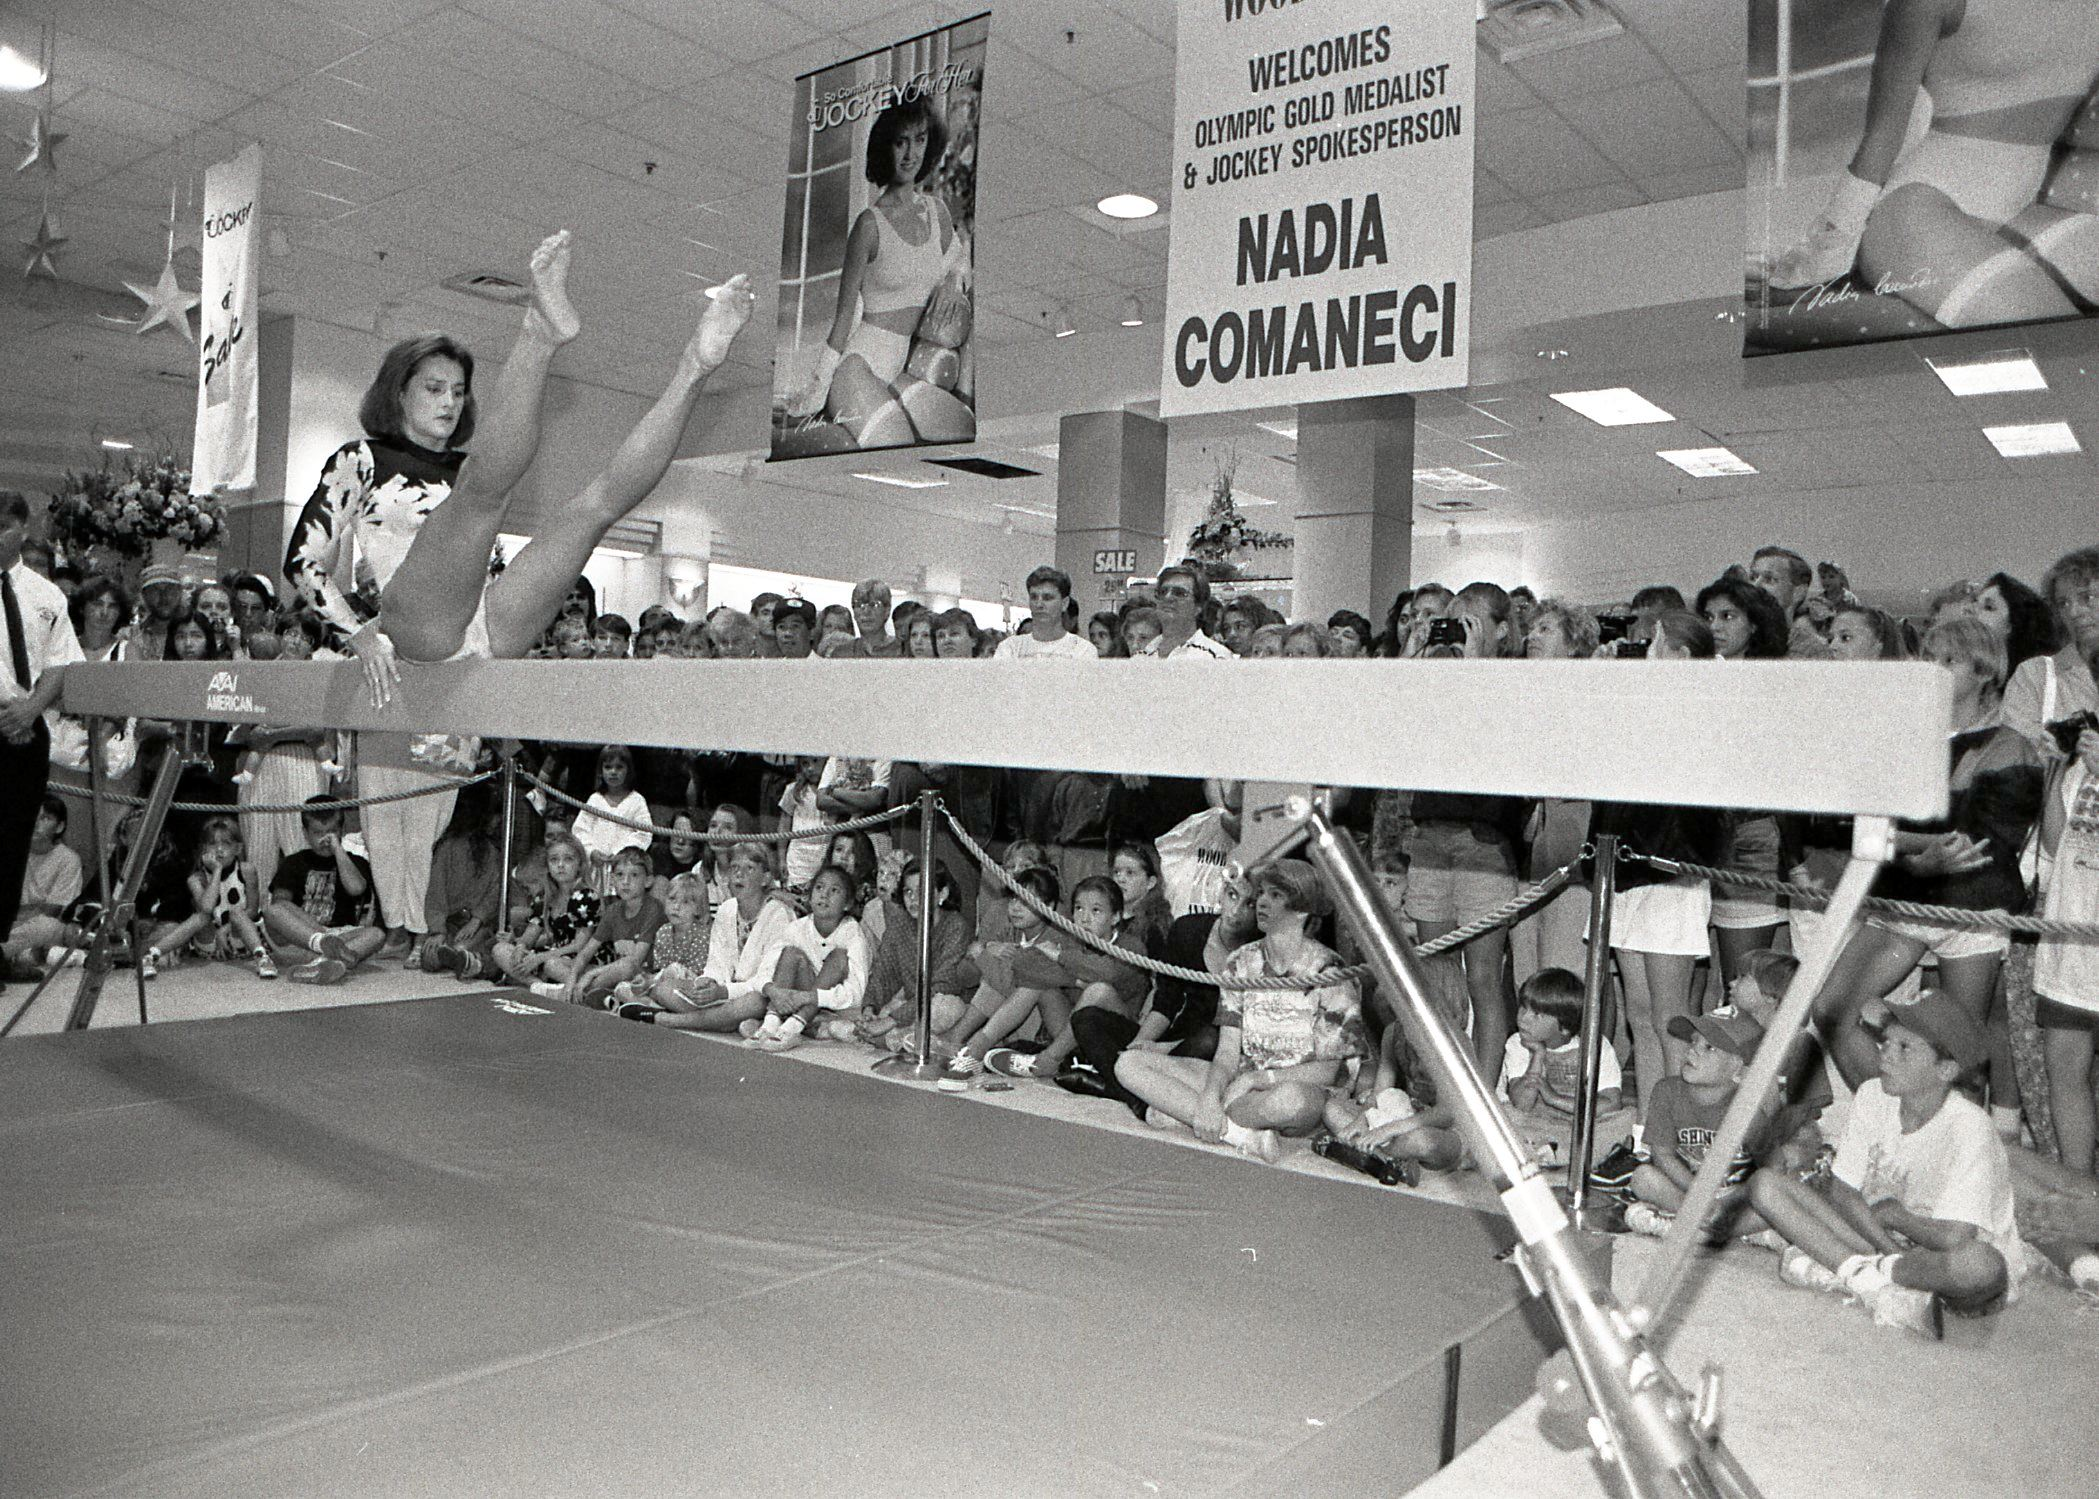 Gymnast Nadia Comaneci at Coquitlam Centre, 1992 (JPG) Opens in new window